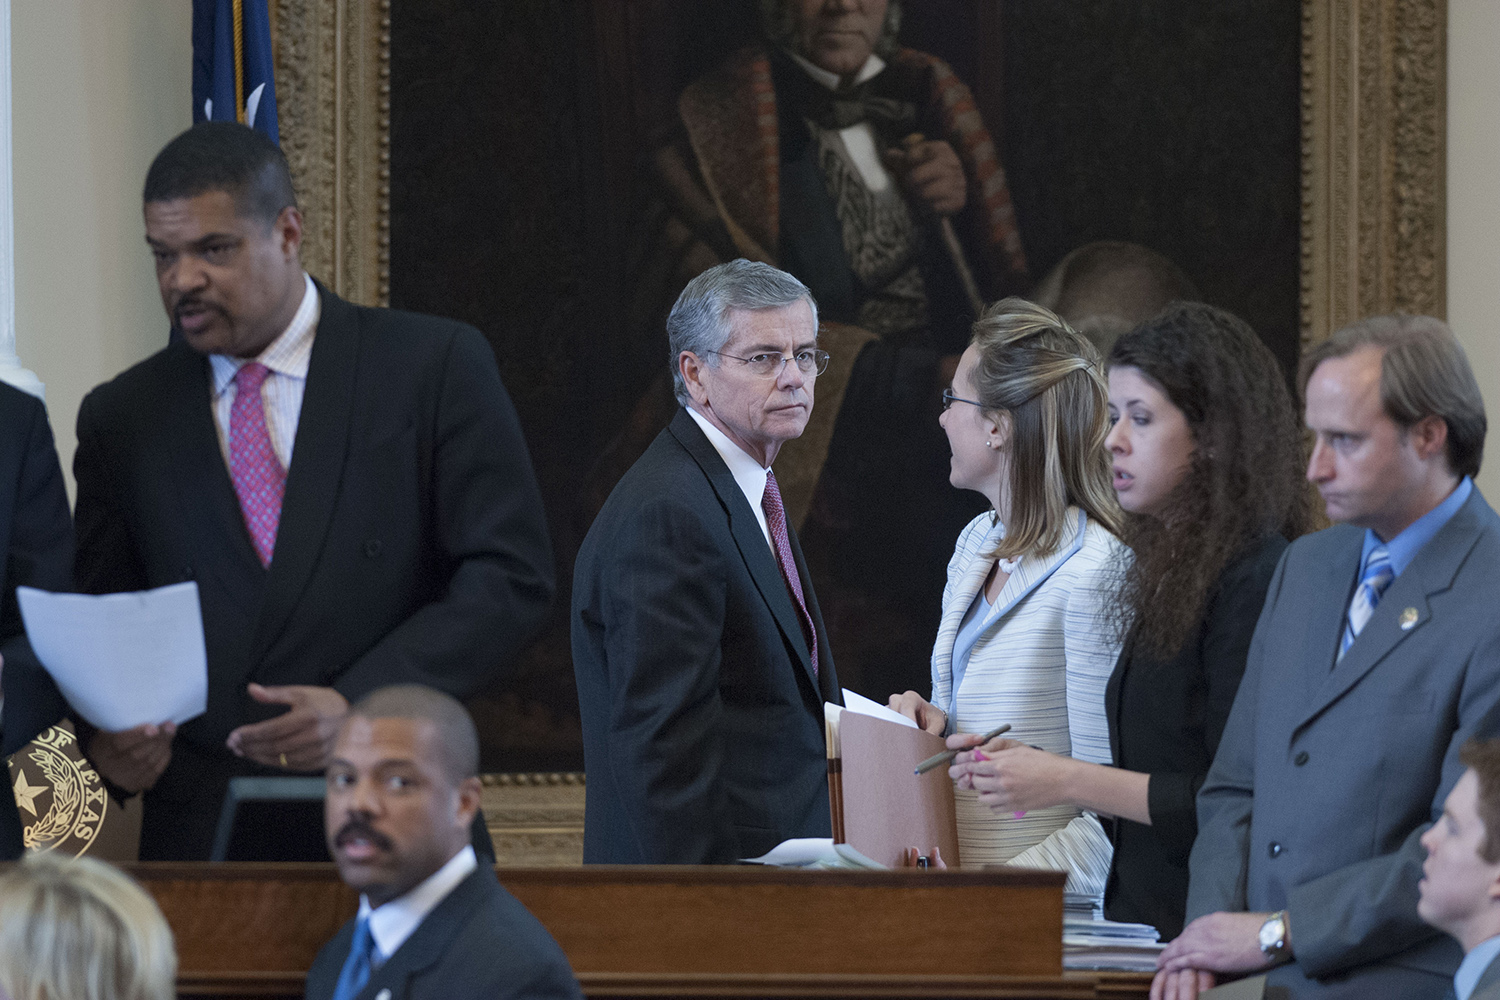 Texas House Speaker Tom Craddick, center, on May 26, 2007, the day after some House members tried to have him removed from the dais.